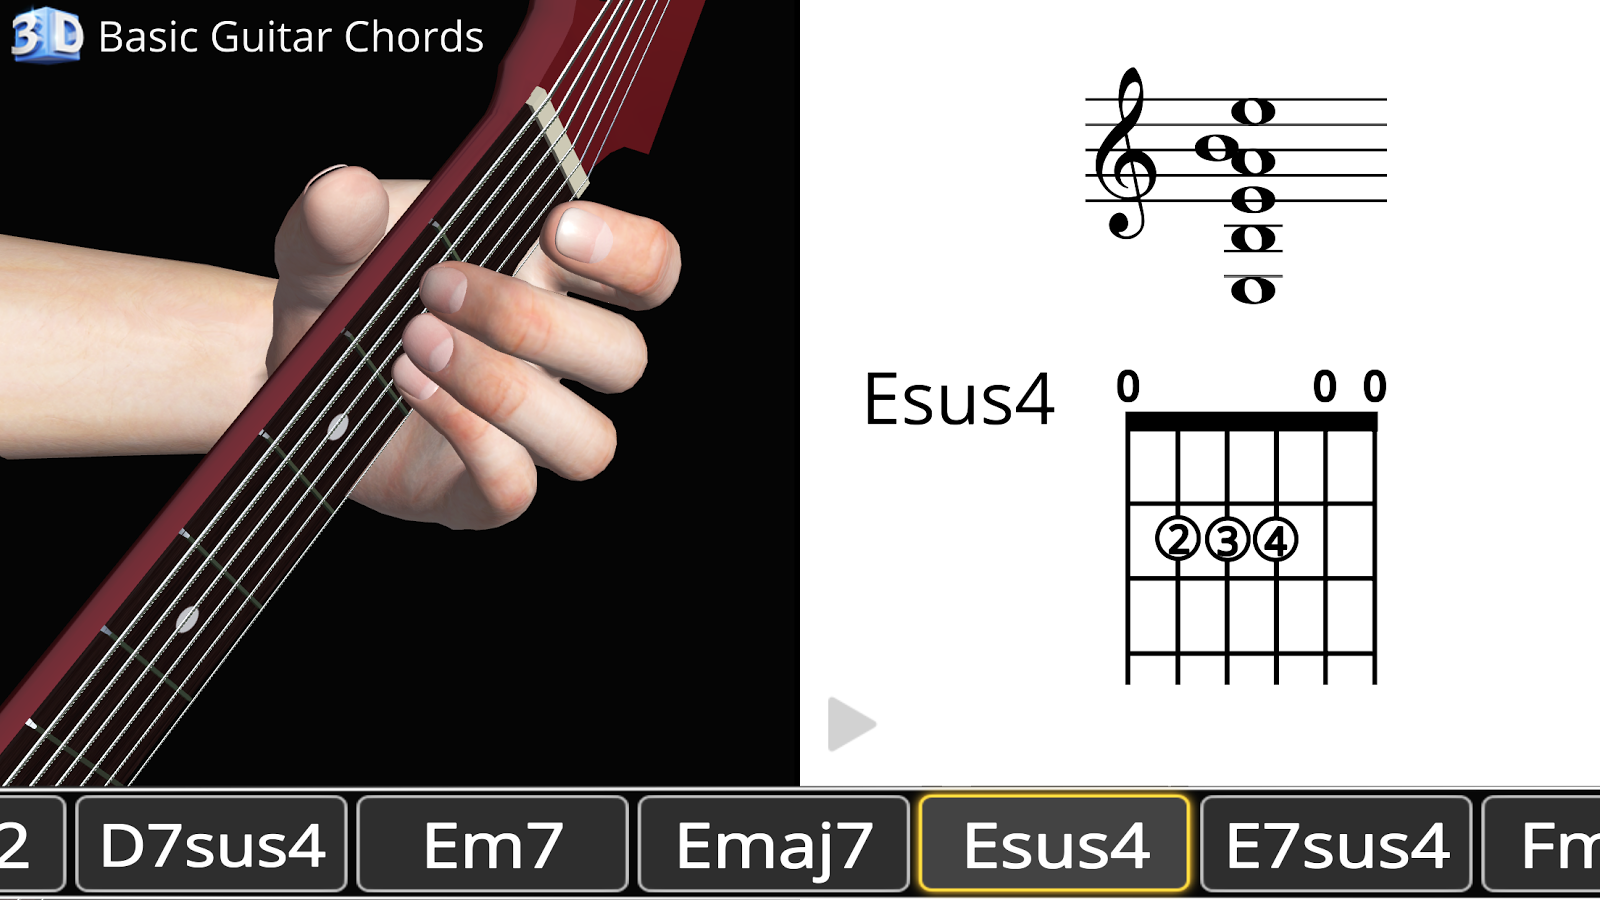 Basic guitar chords 3d android apps on google play basic guitar chords 3d screenshot hexwebz Gallery